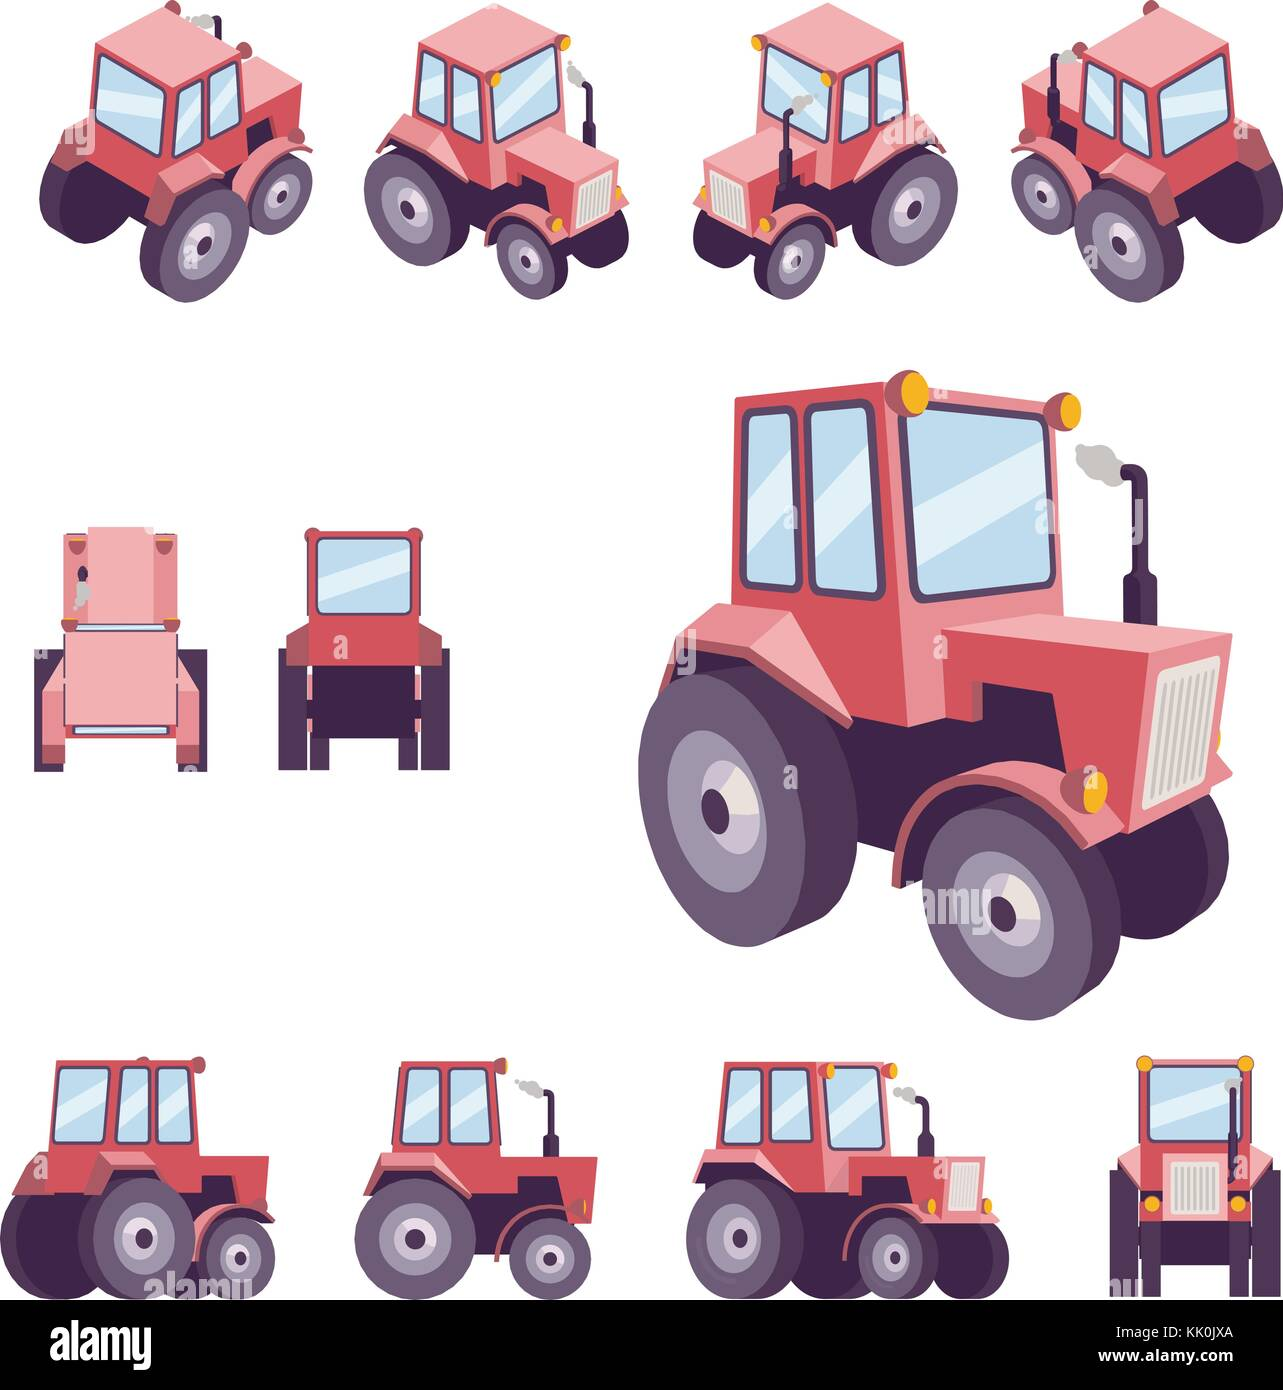 red farm tractor from different angles vehicle template vector